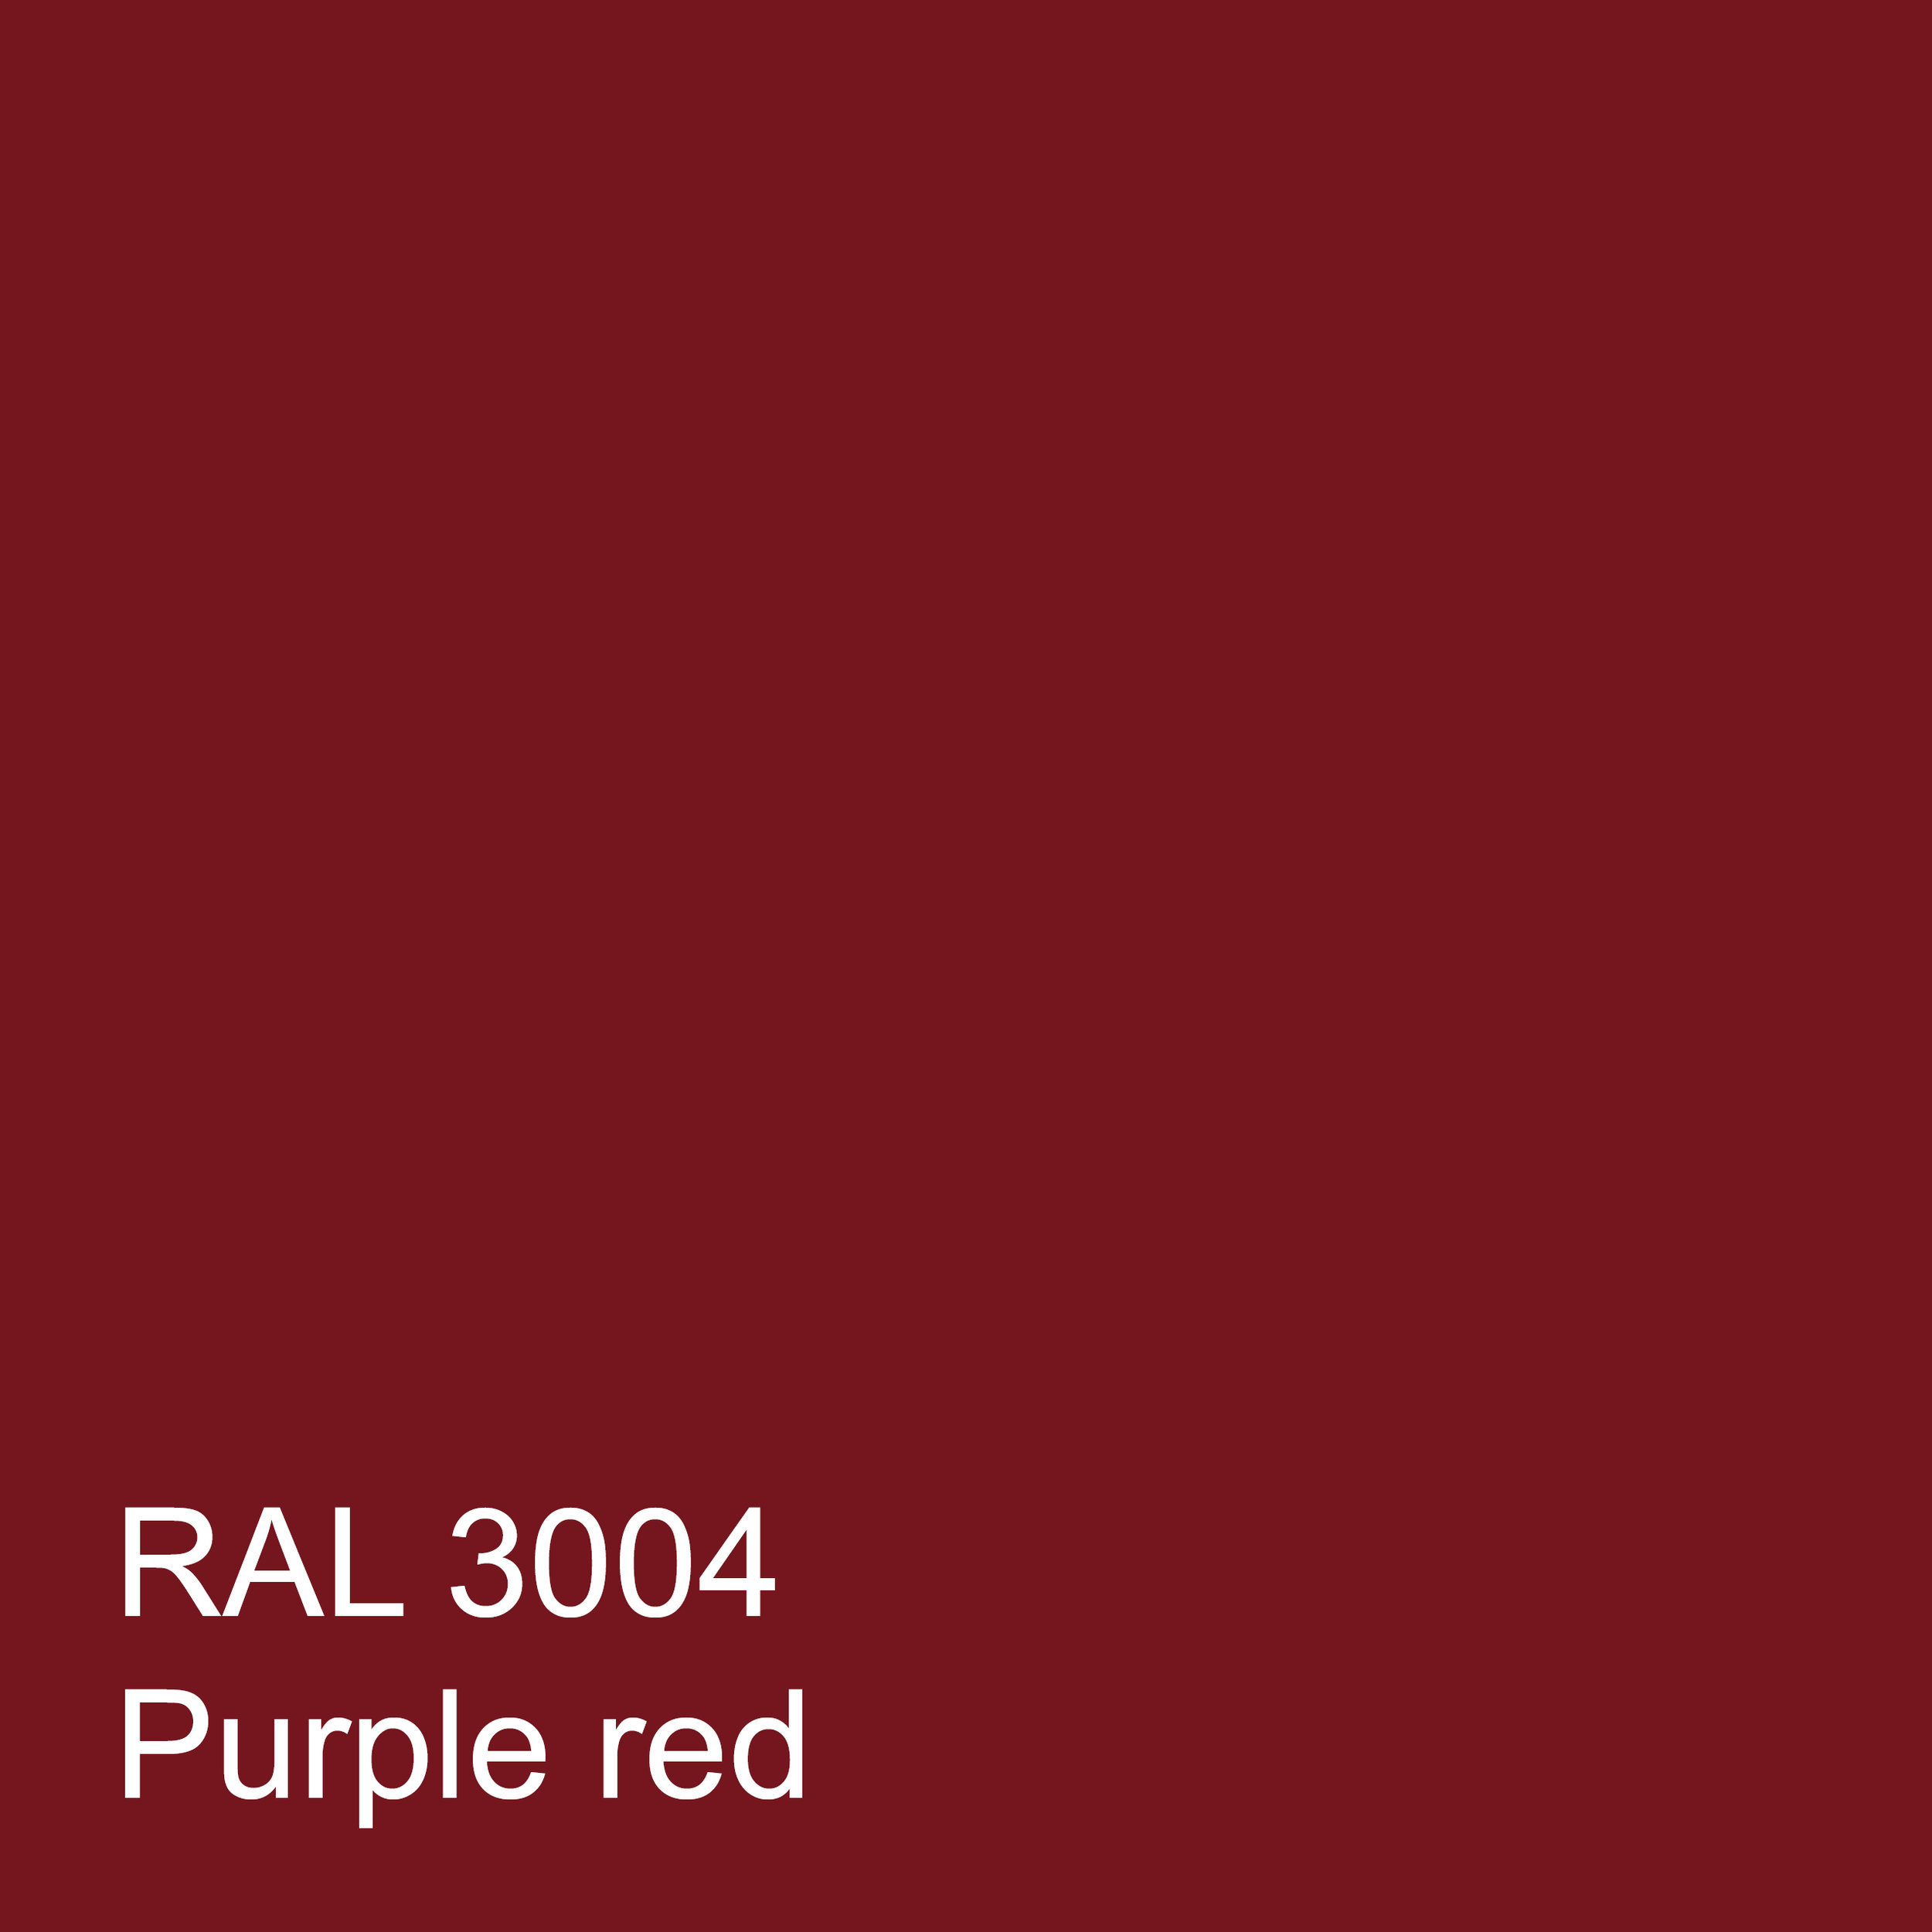 RAL 3004 PURPLE RED.jpg